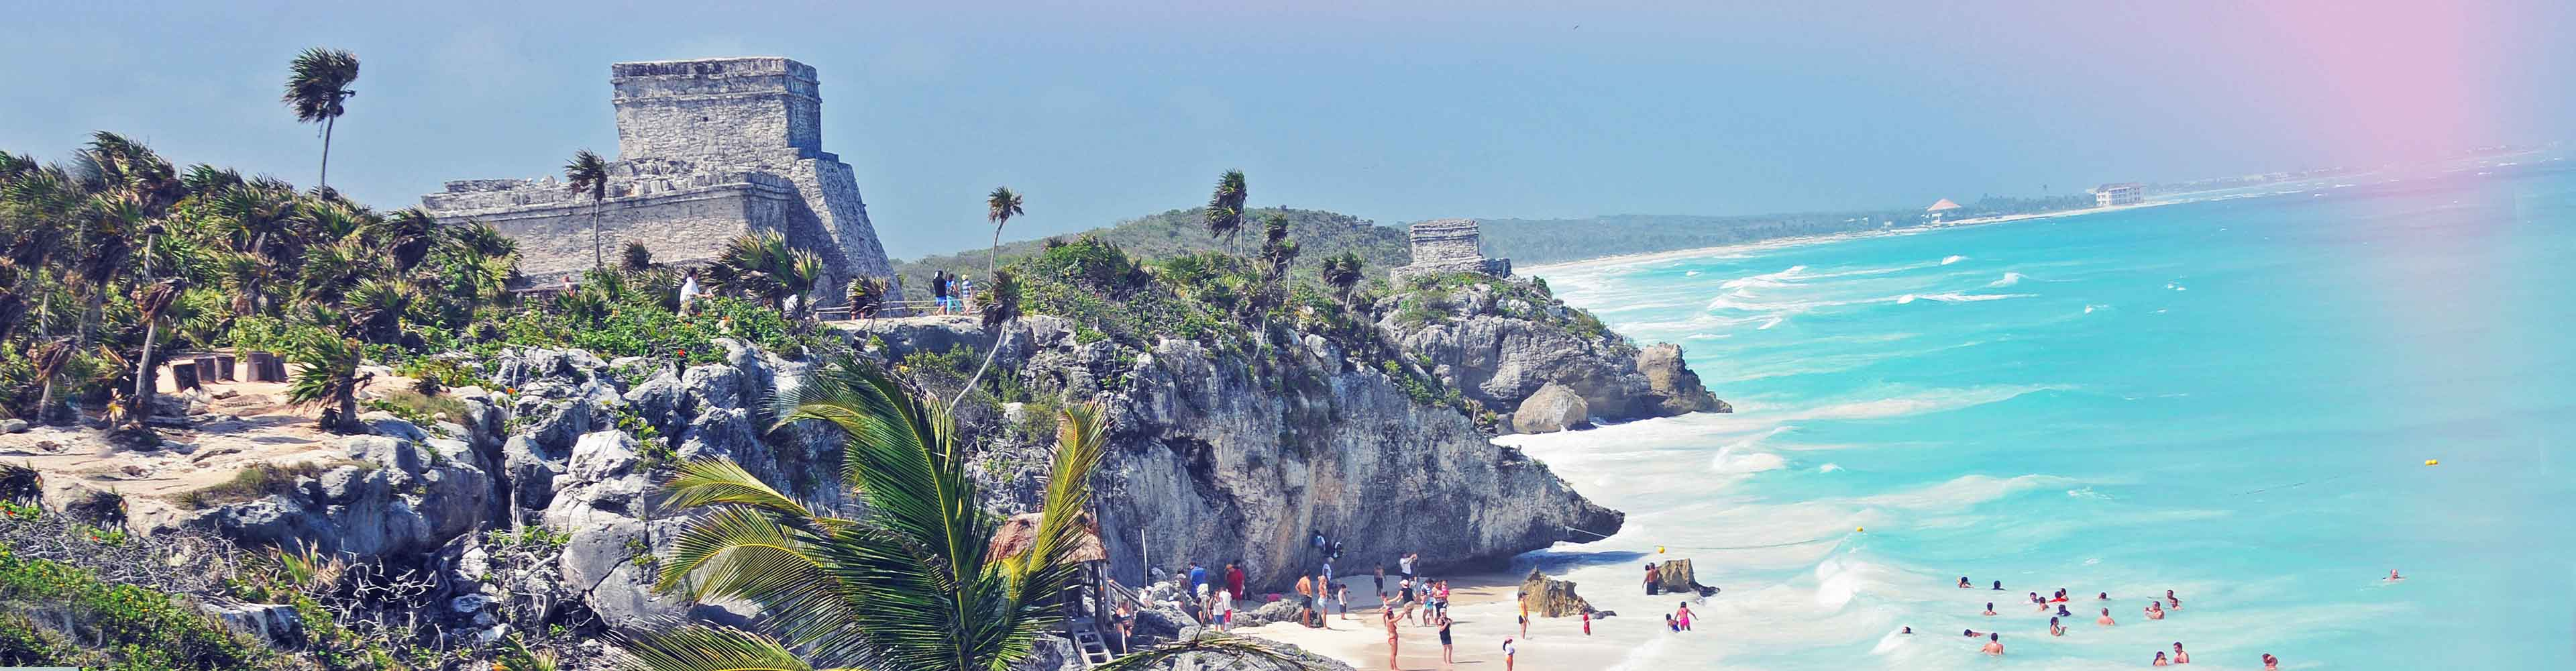 Epic Mexico to Costa Rica